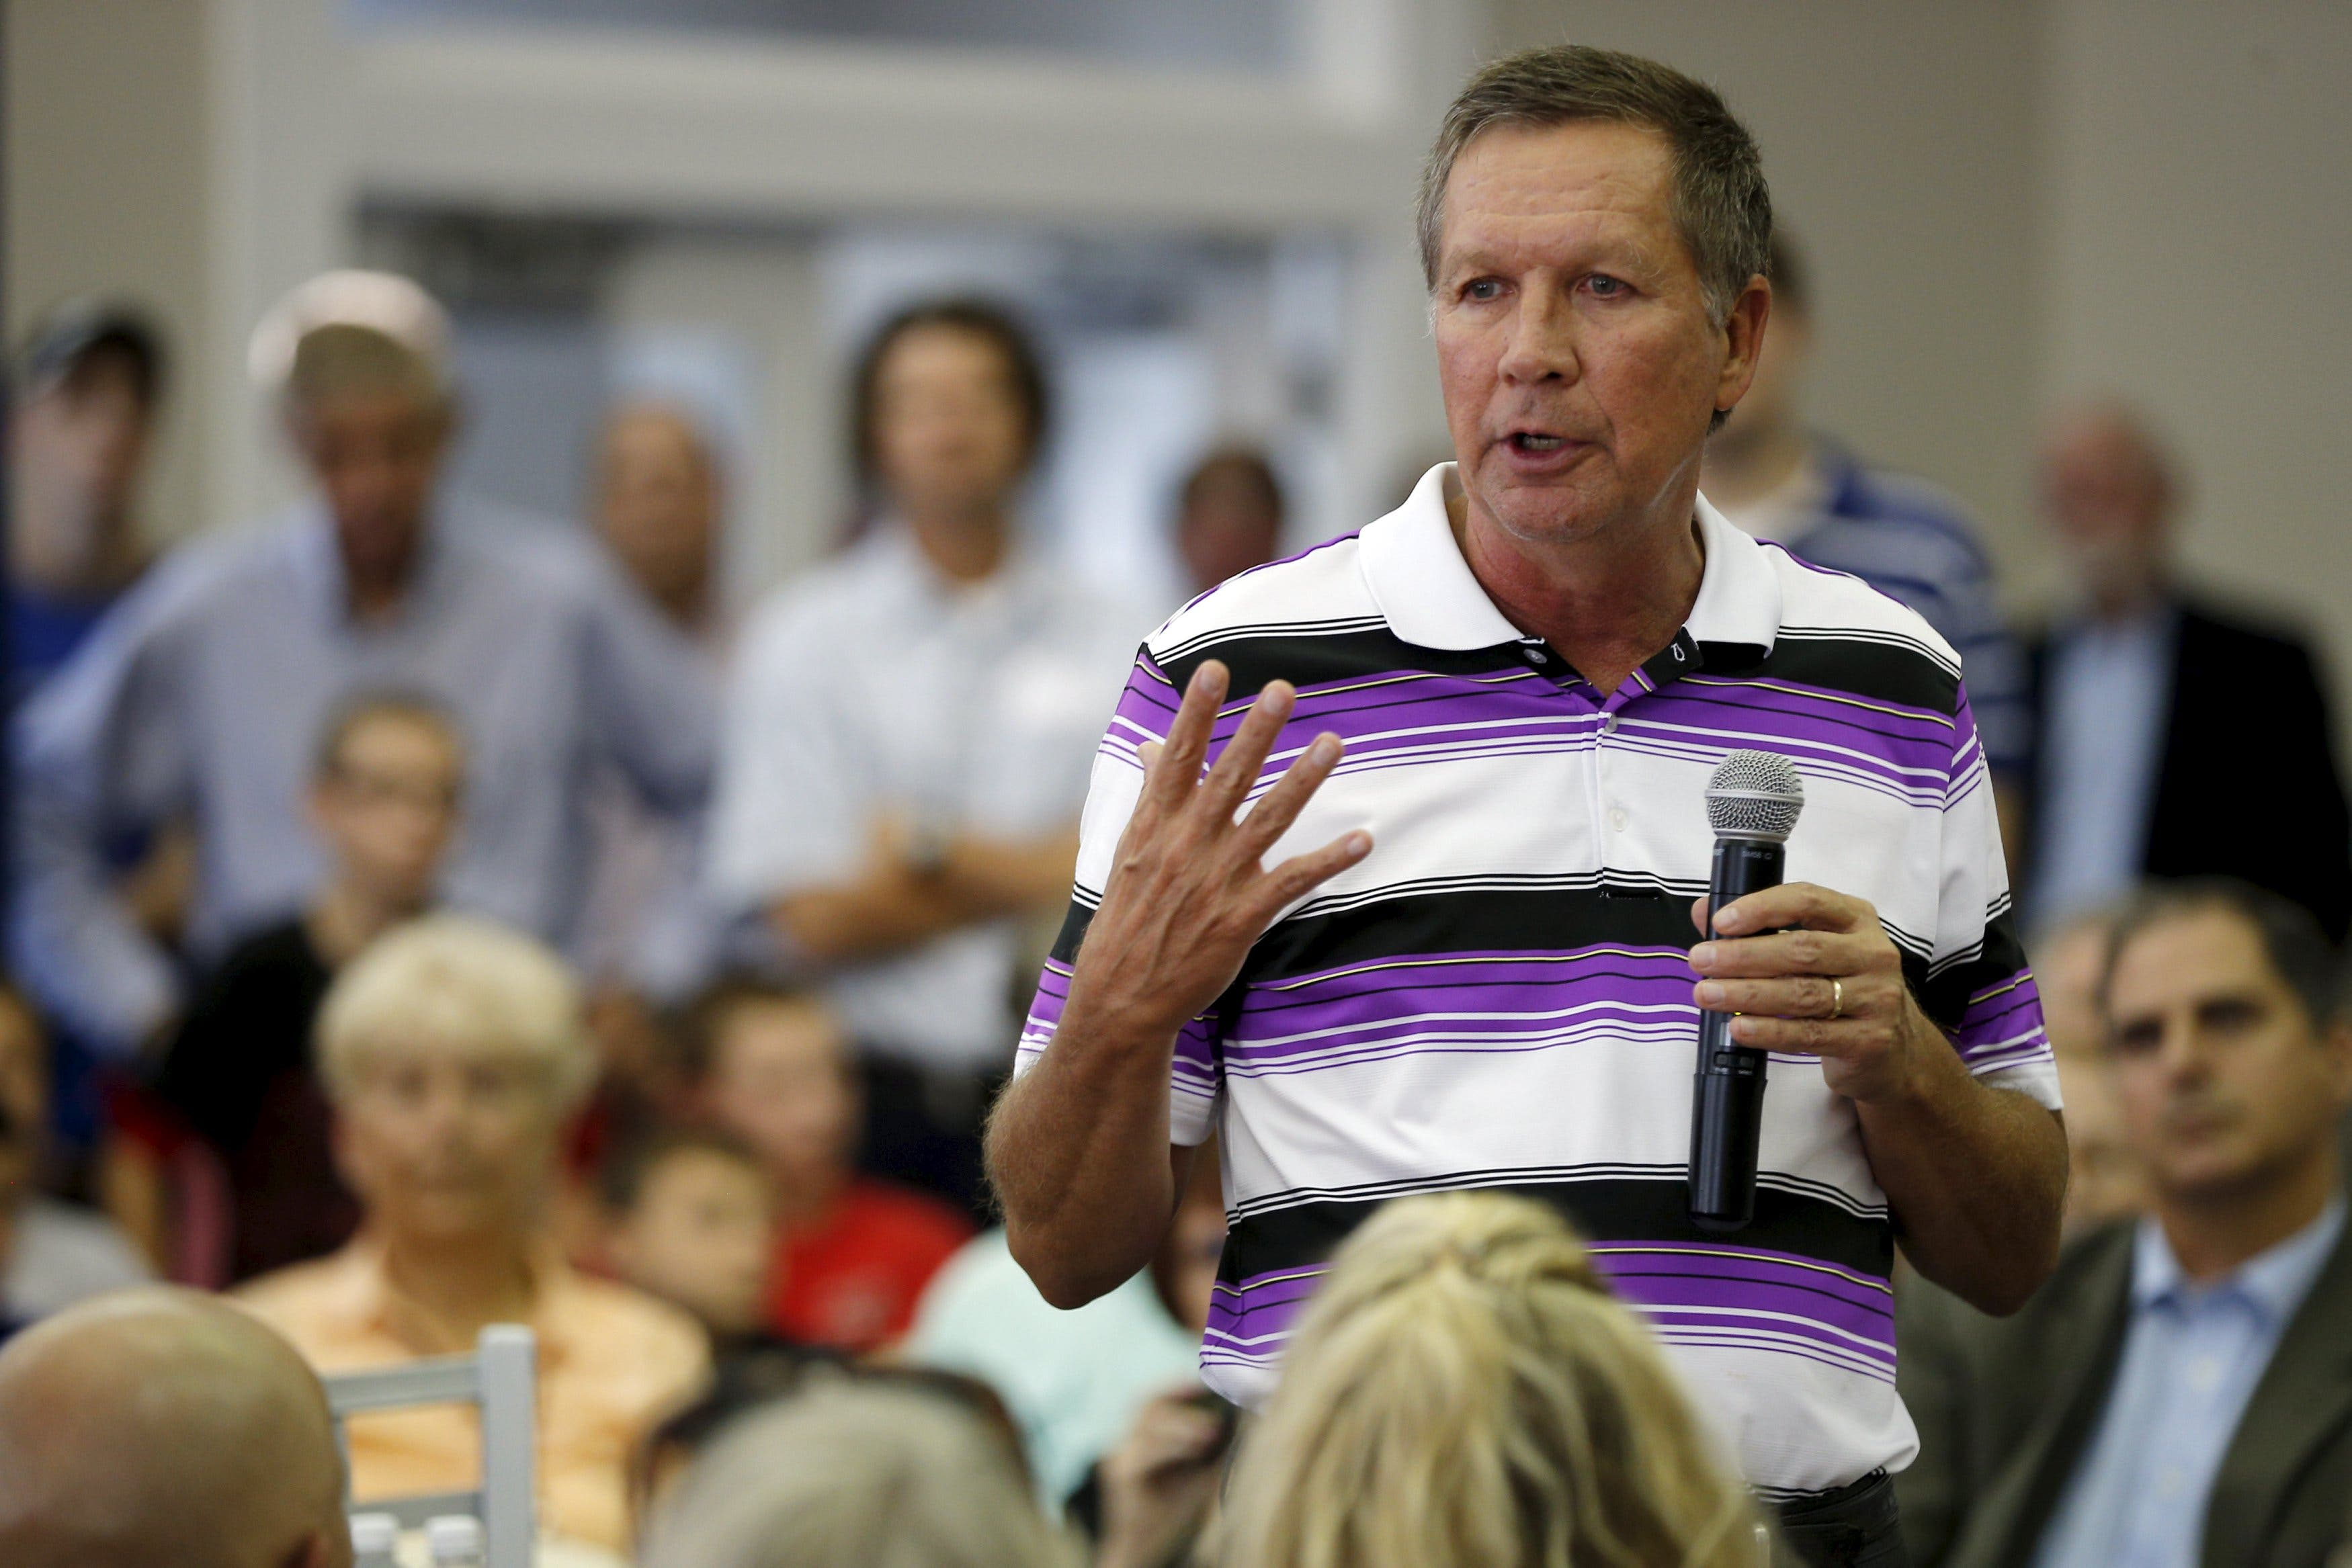 John Kasich at a campaign town hall meeting at New England College in Henniker, New Hampshire. (Reuters)